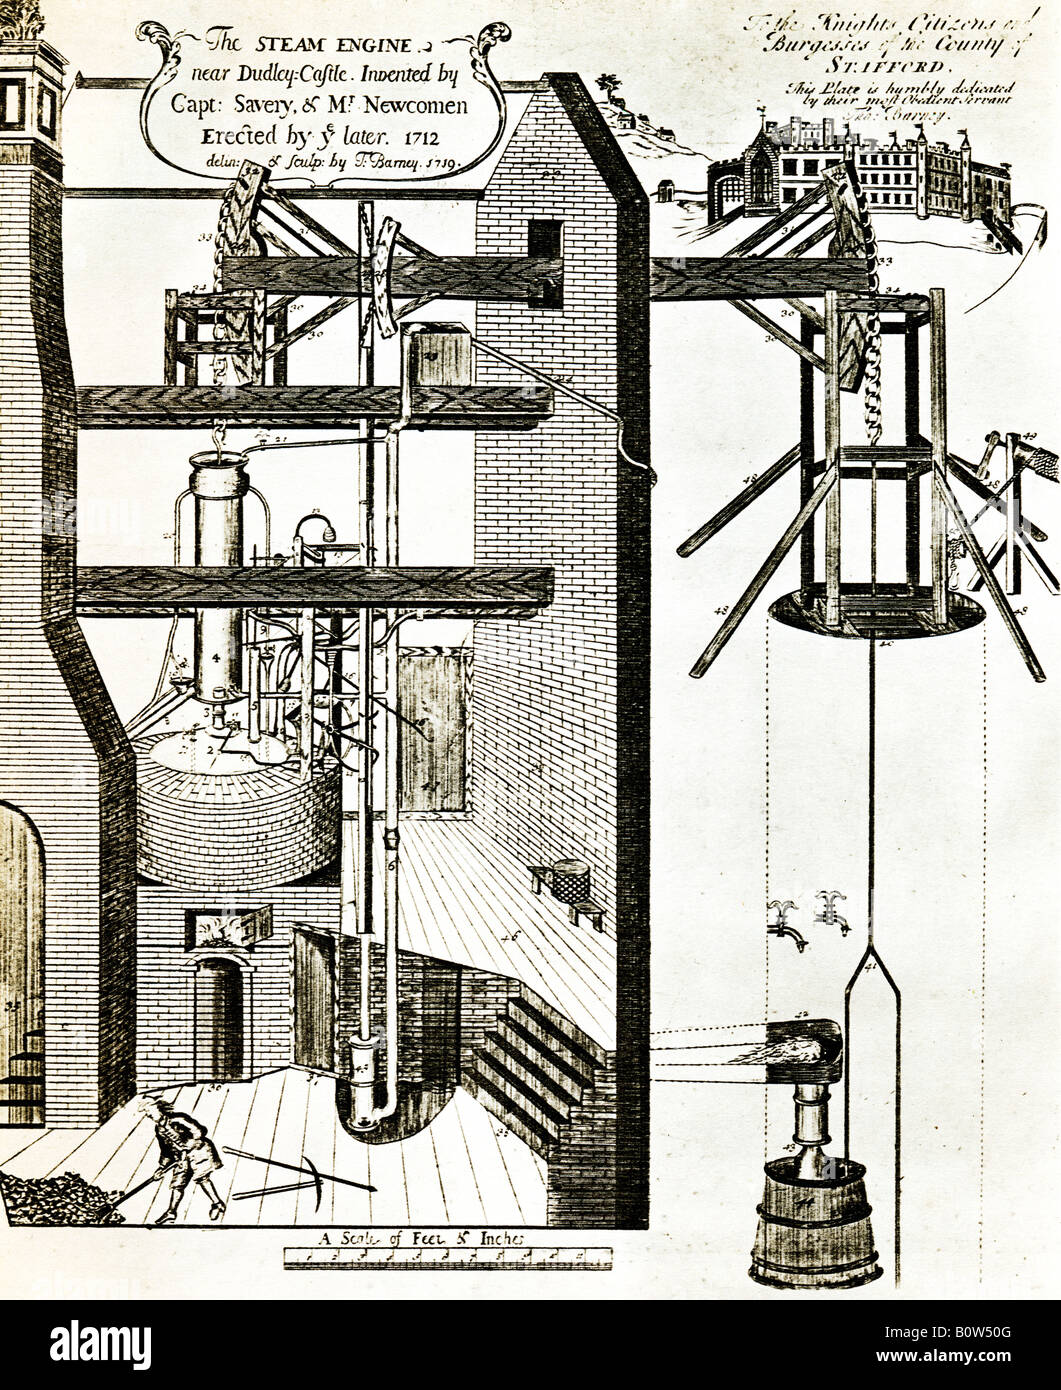 hight resolution of thomas newcomen steam engine 1712 the first atmospheric steam engine in dudley for pumping water out of mines